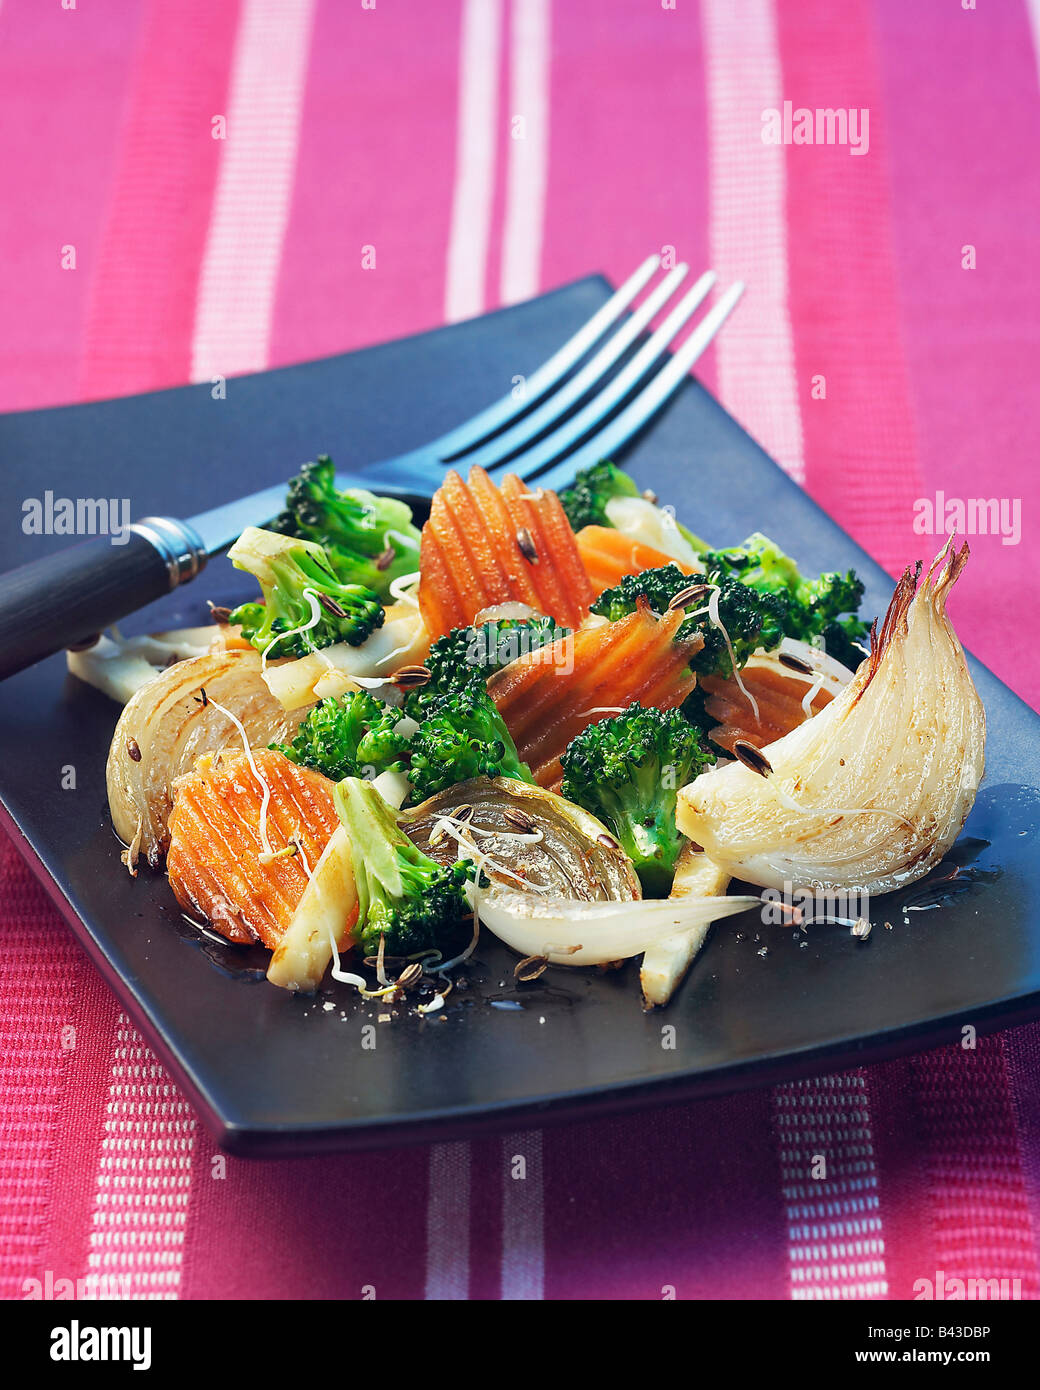 Pan-fried vegetables with sprouts - Stock Image